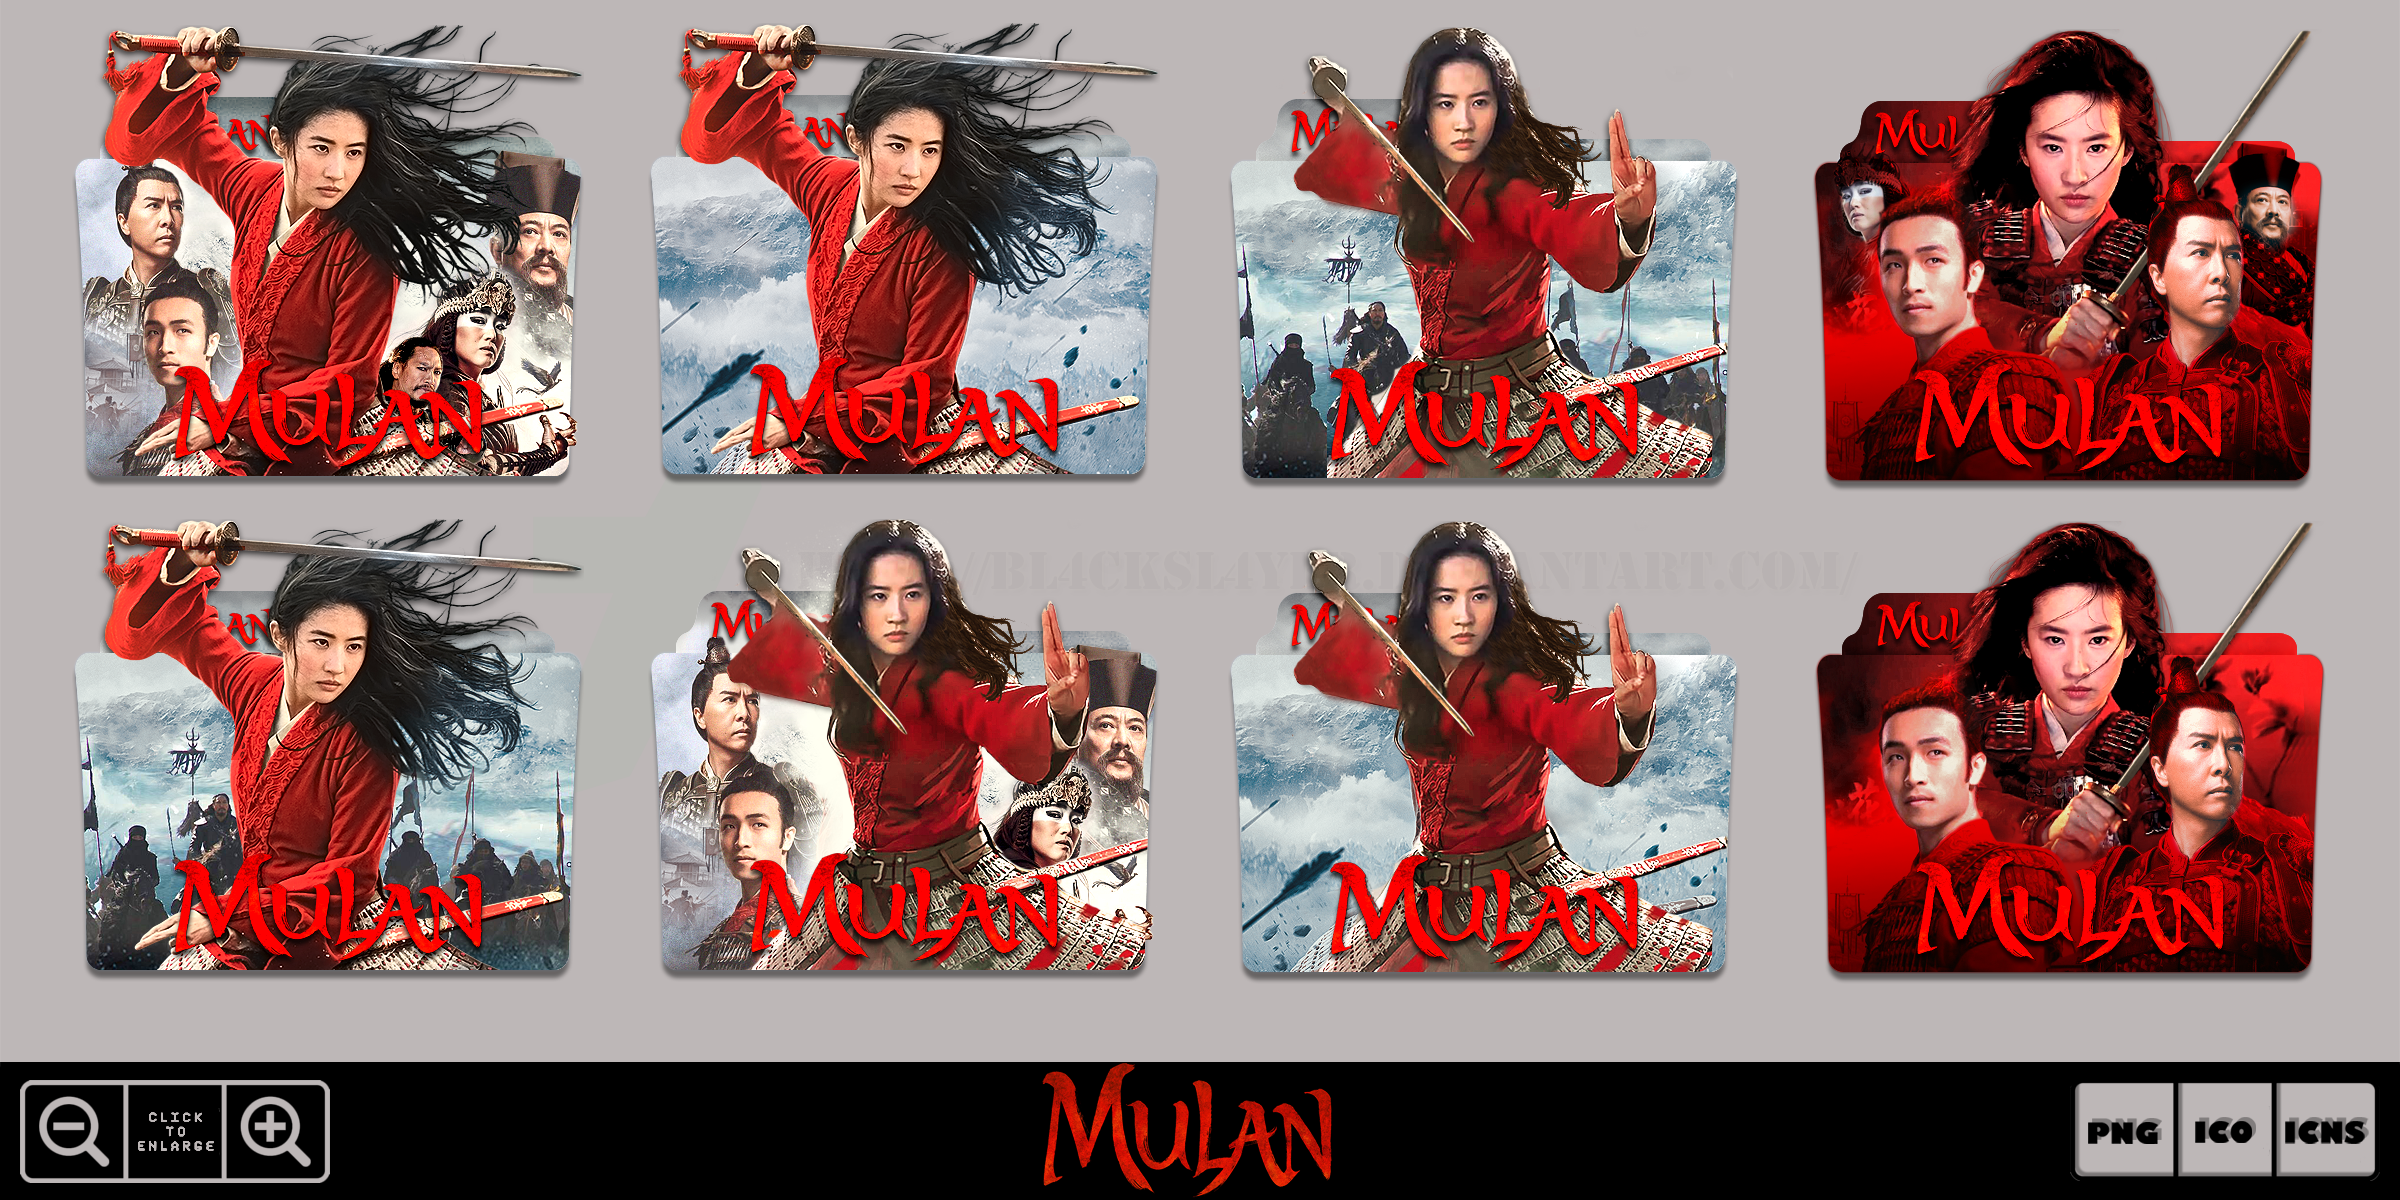 Mulan 2020 Movie Folder Icon Pack By Bl4cksl4yer On Deviantart